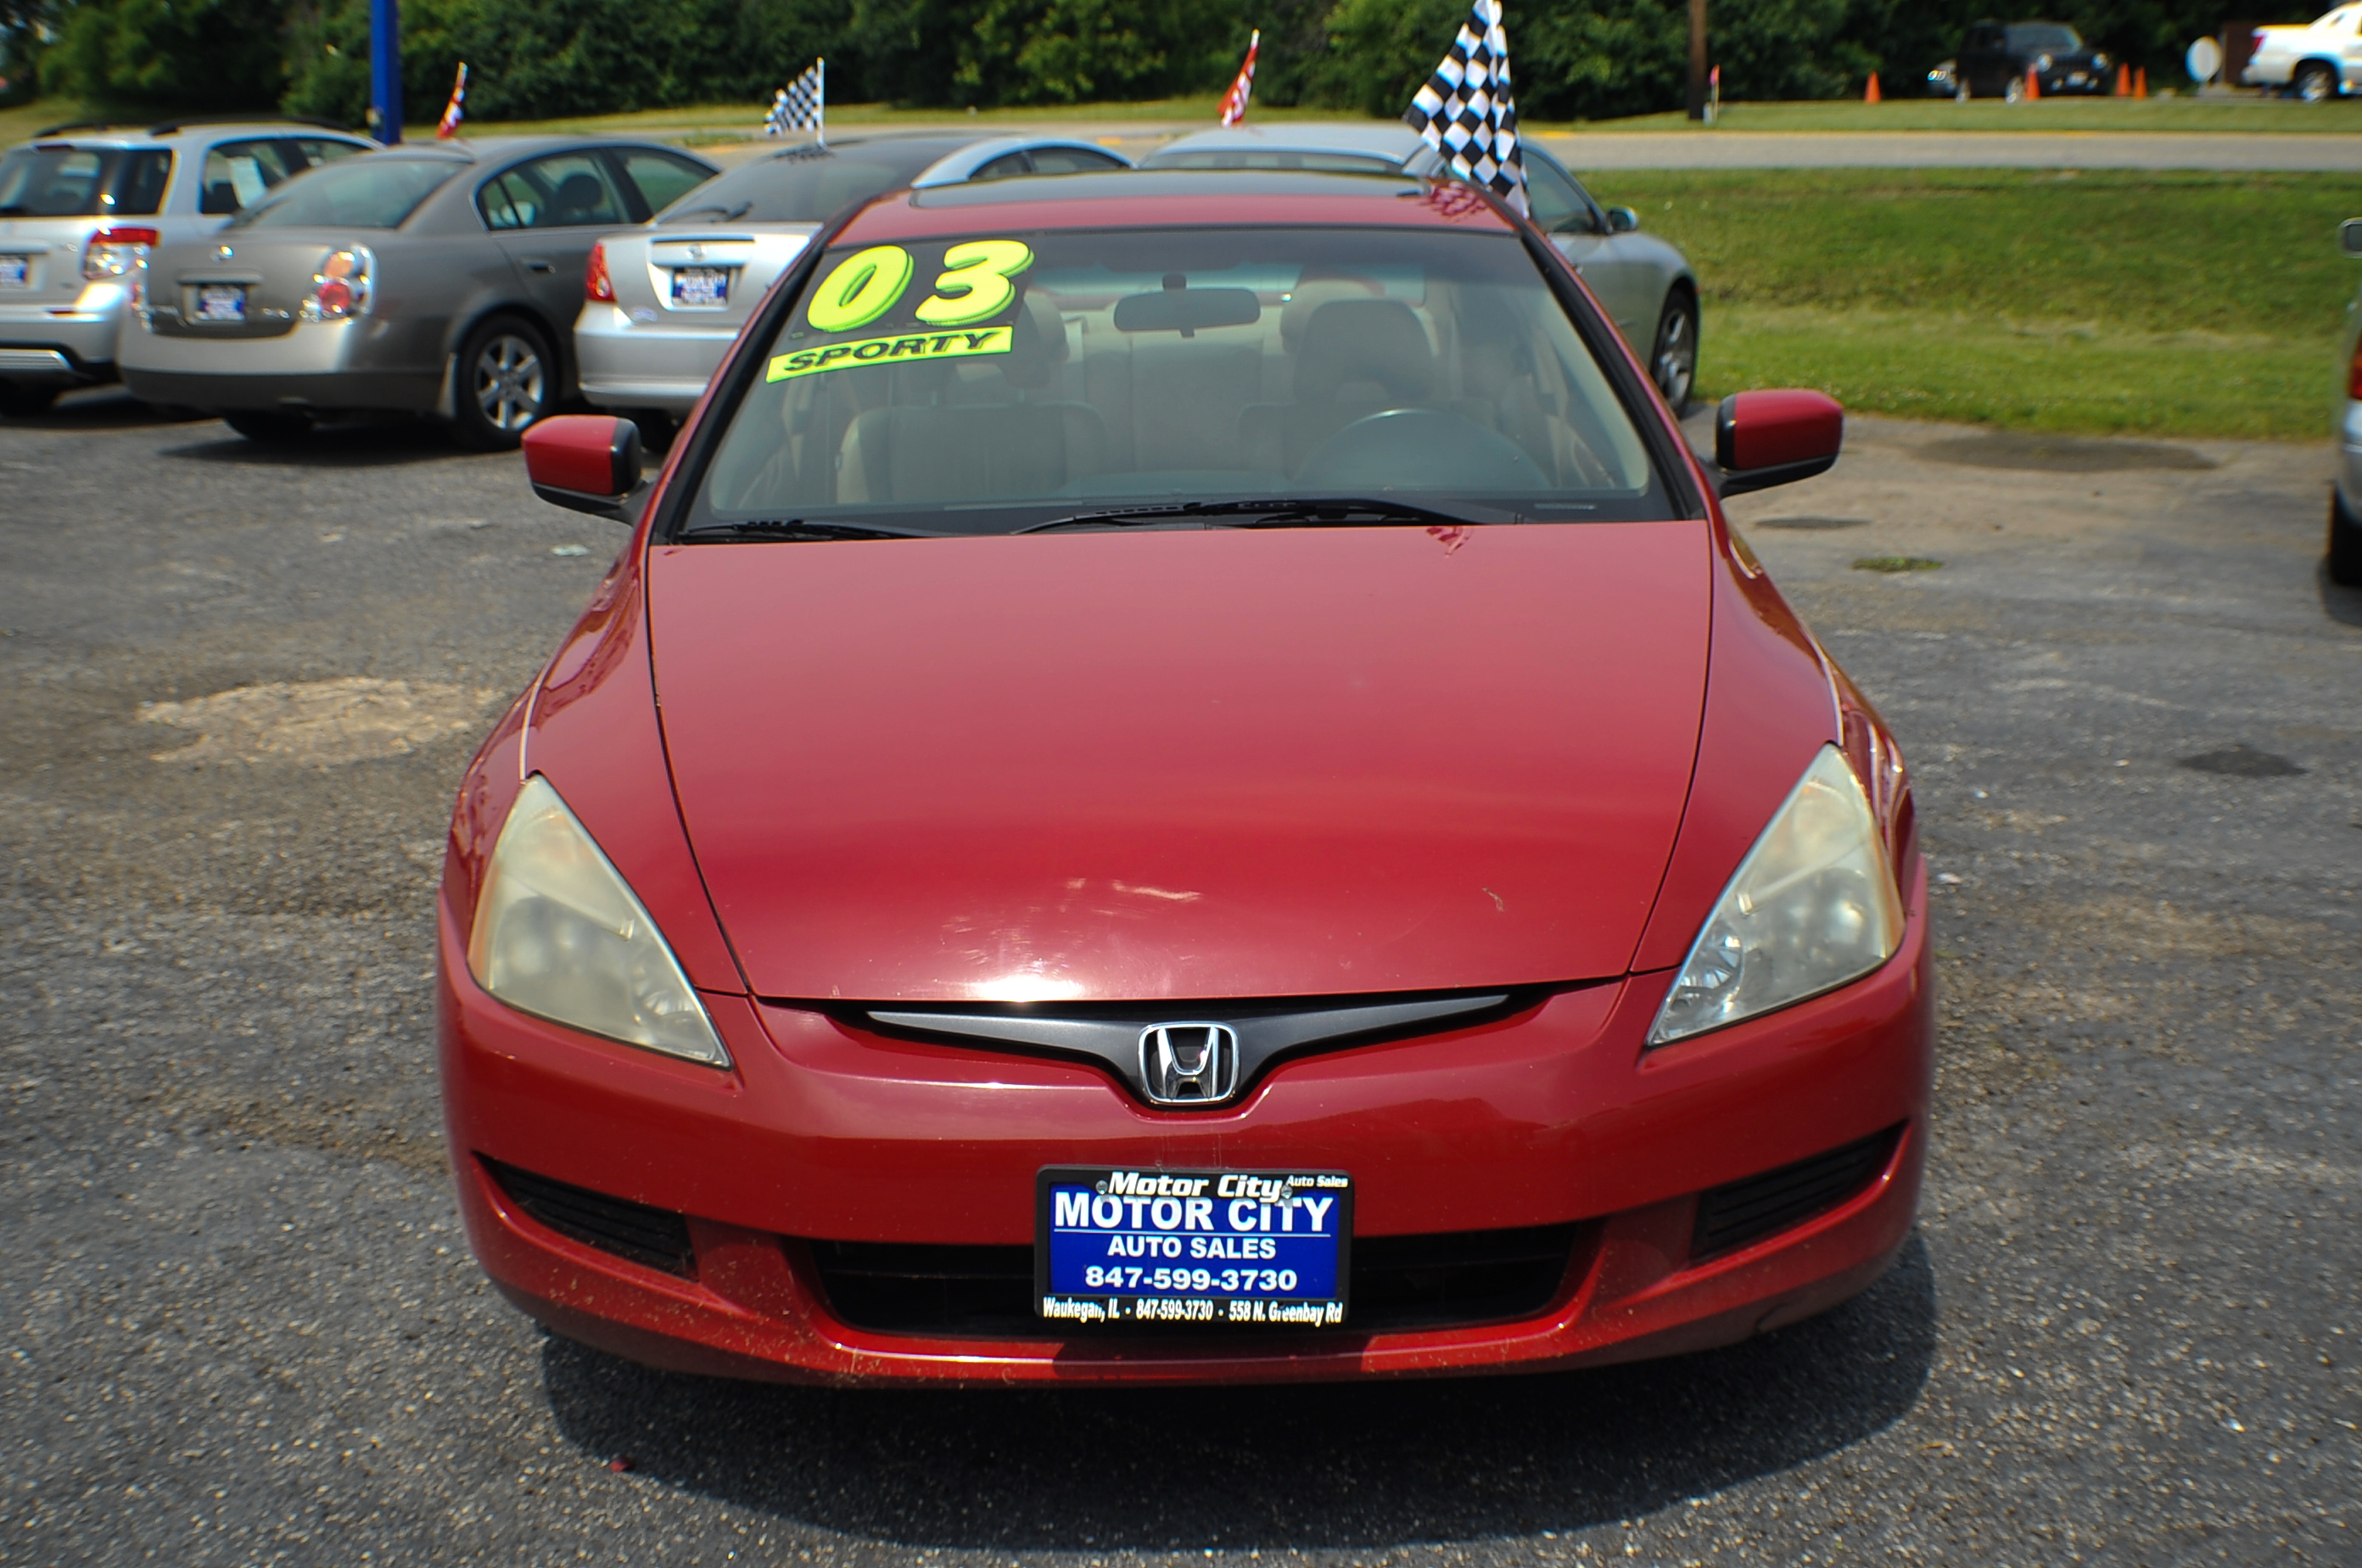 2003 honda accord red v6 sport coupe used car sale. Black Bedroom Furniture Sets. Home Design Ideas